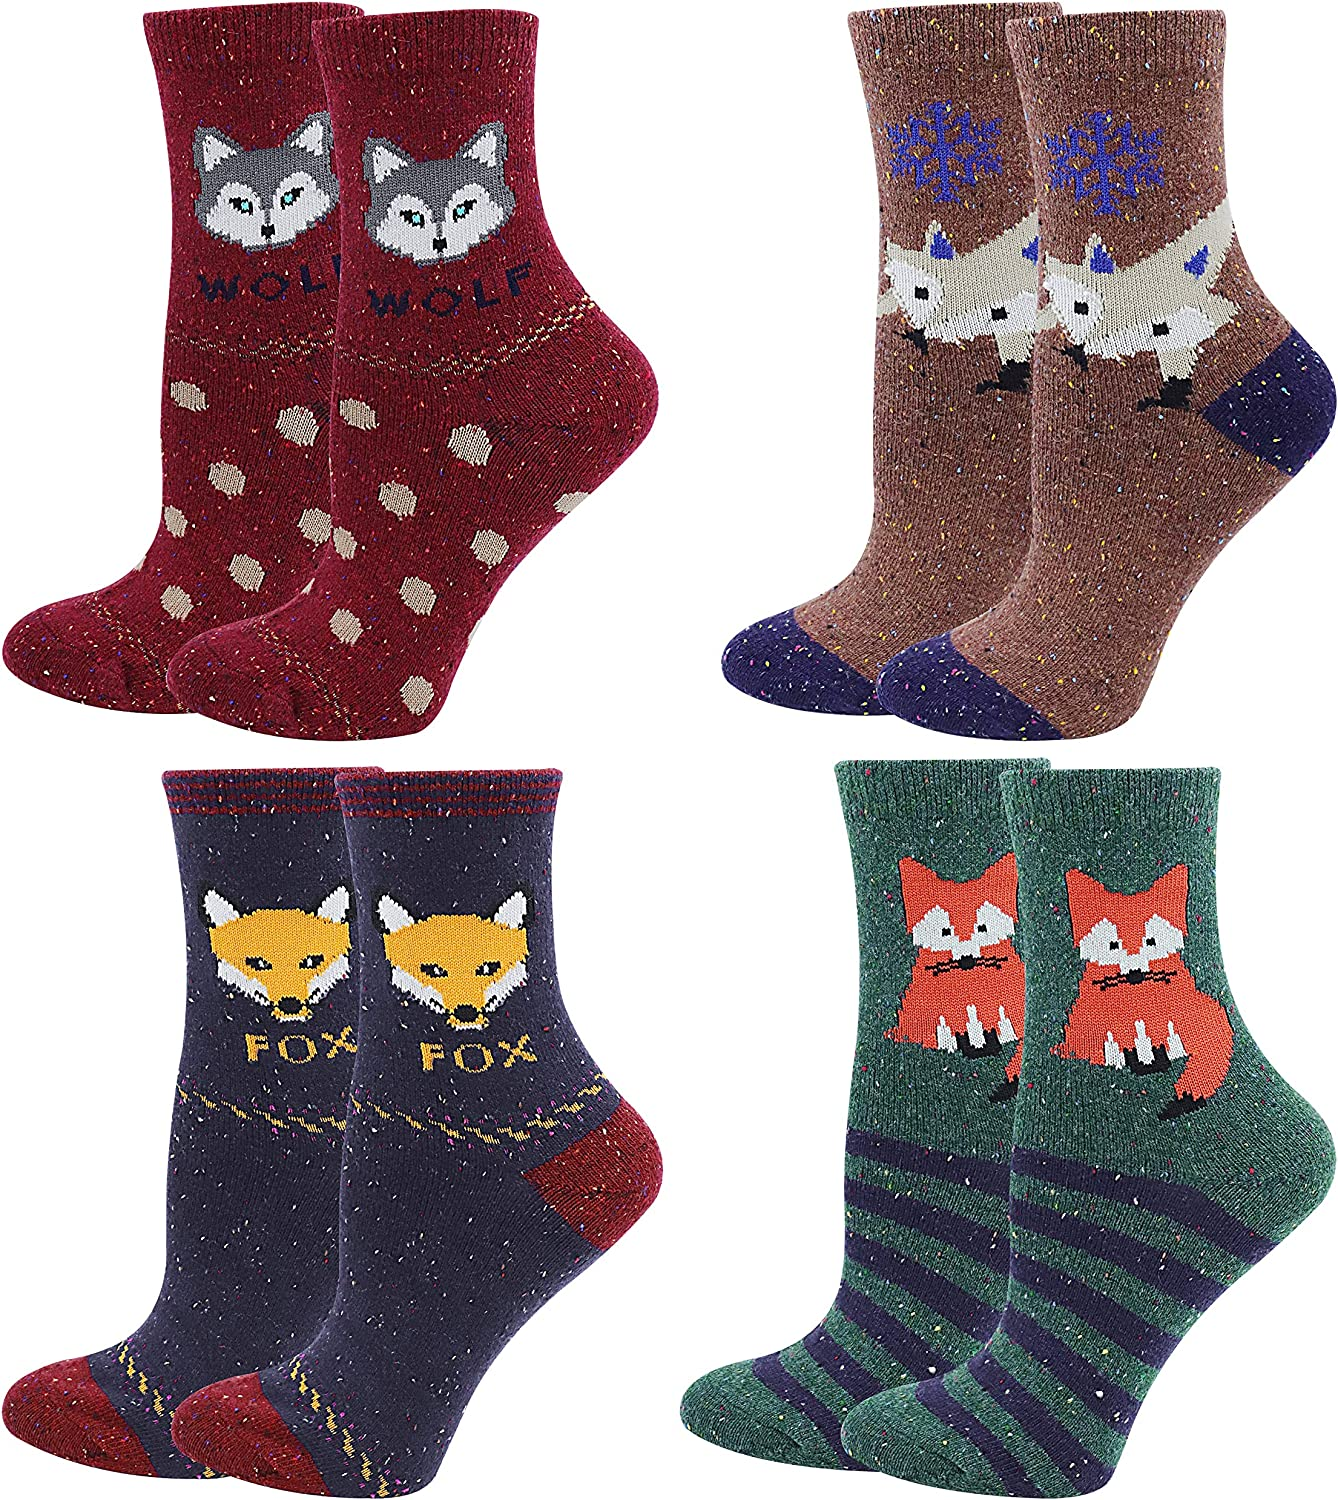 Colorful Women's Cotton Socks with Cartoon Animals Fox and Wolf, Pack of 4 Pairs